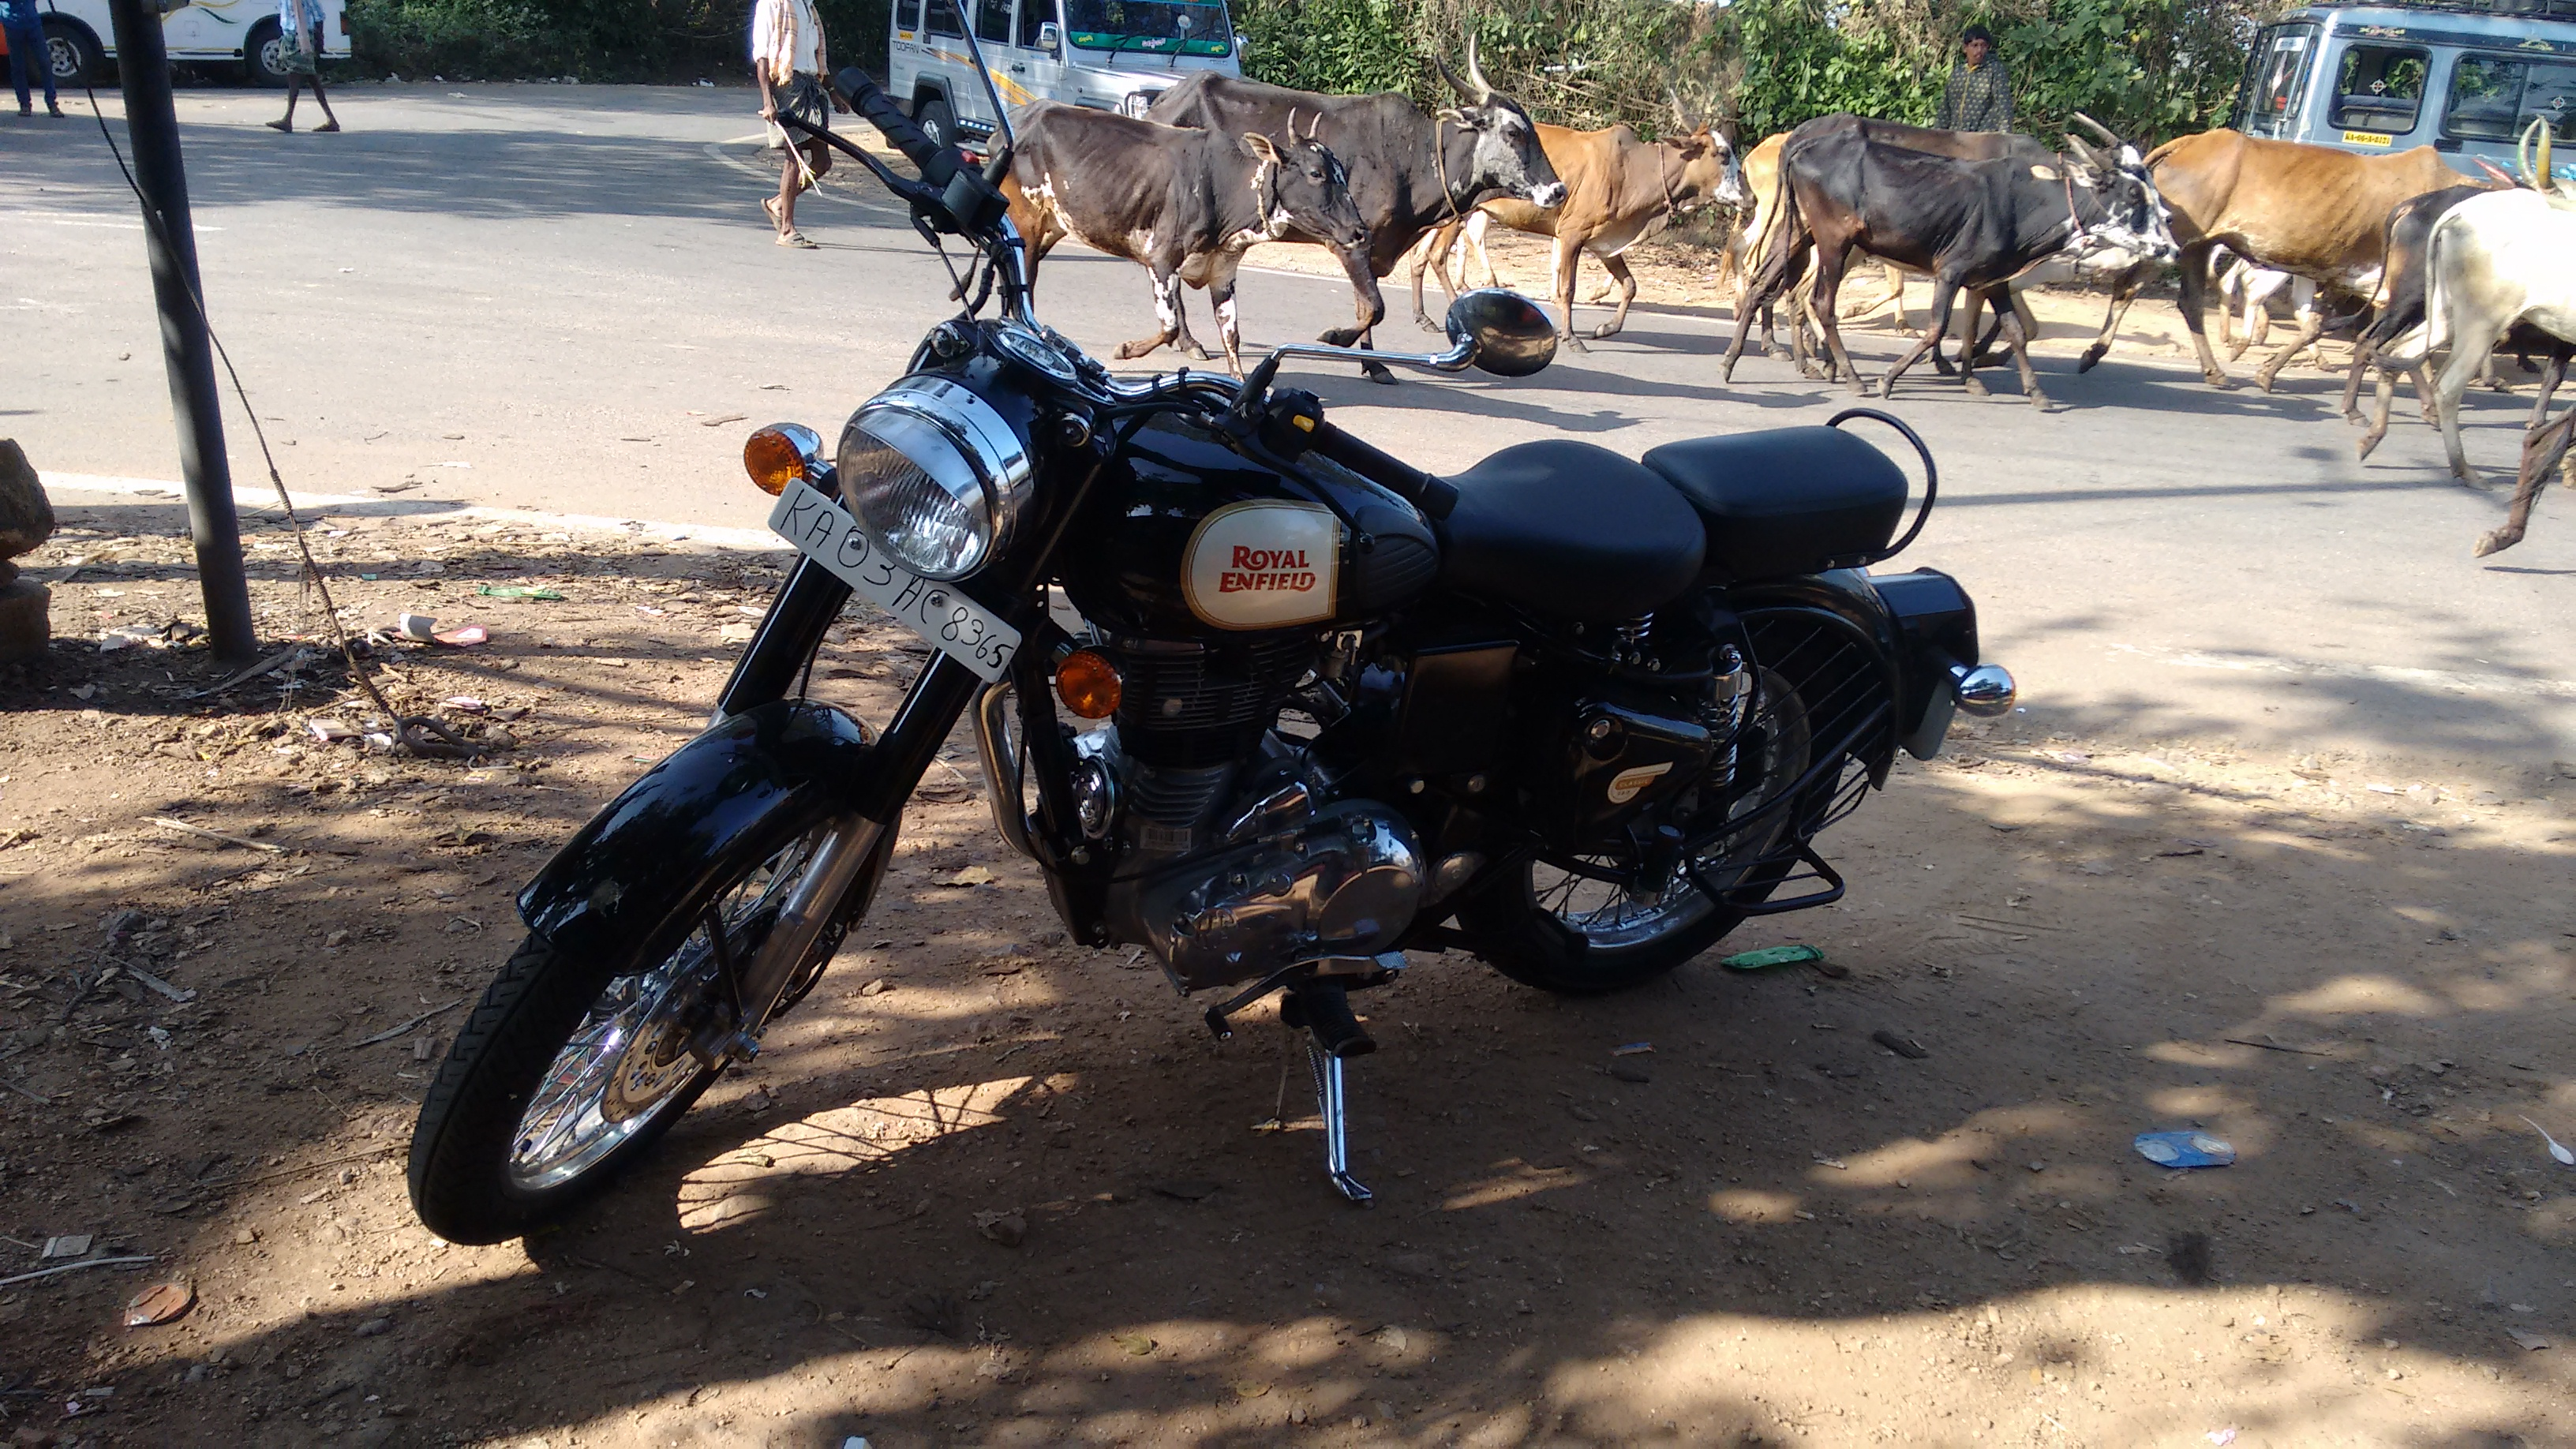 Royal Enfield 350 parked facing the left; in the background a herd of skinny cattle pass towards the right